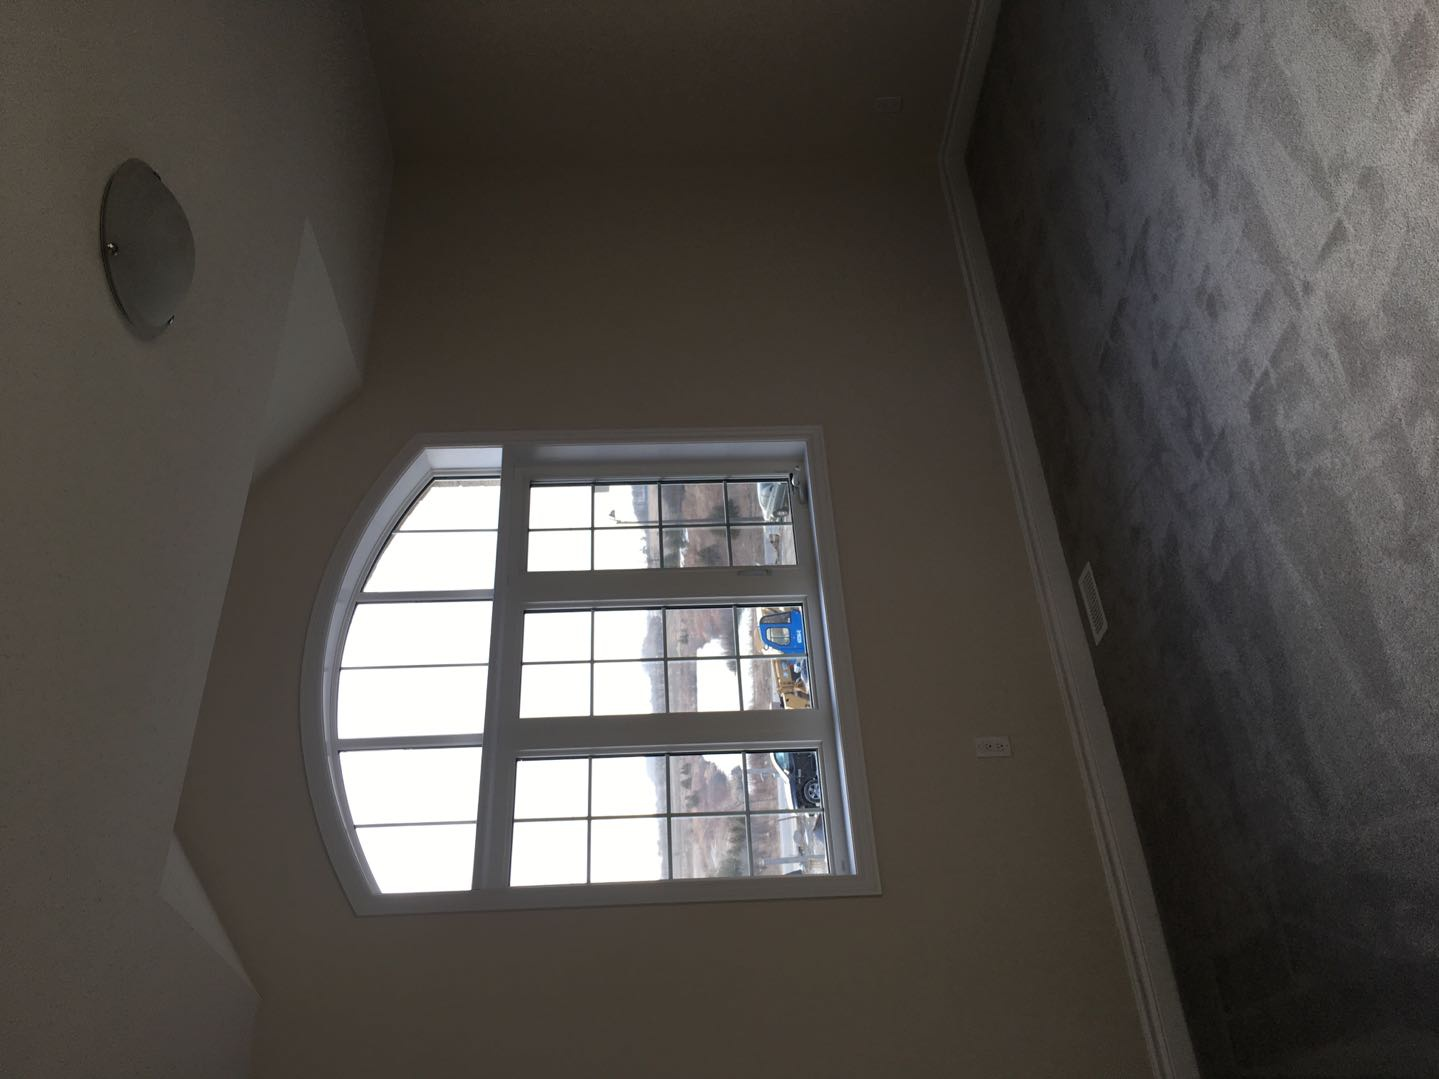 House for rent at 92 Morningside Dr, Halton Hills, ON. This is the details with high ceiling, vaulted ceiling and natural light.